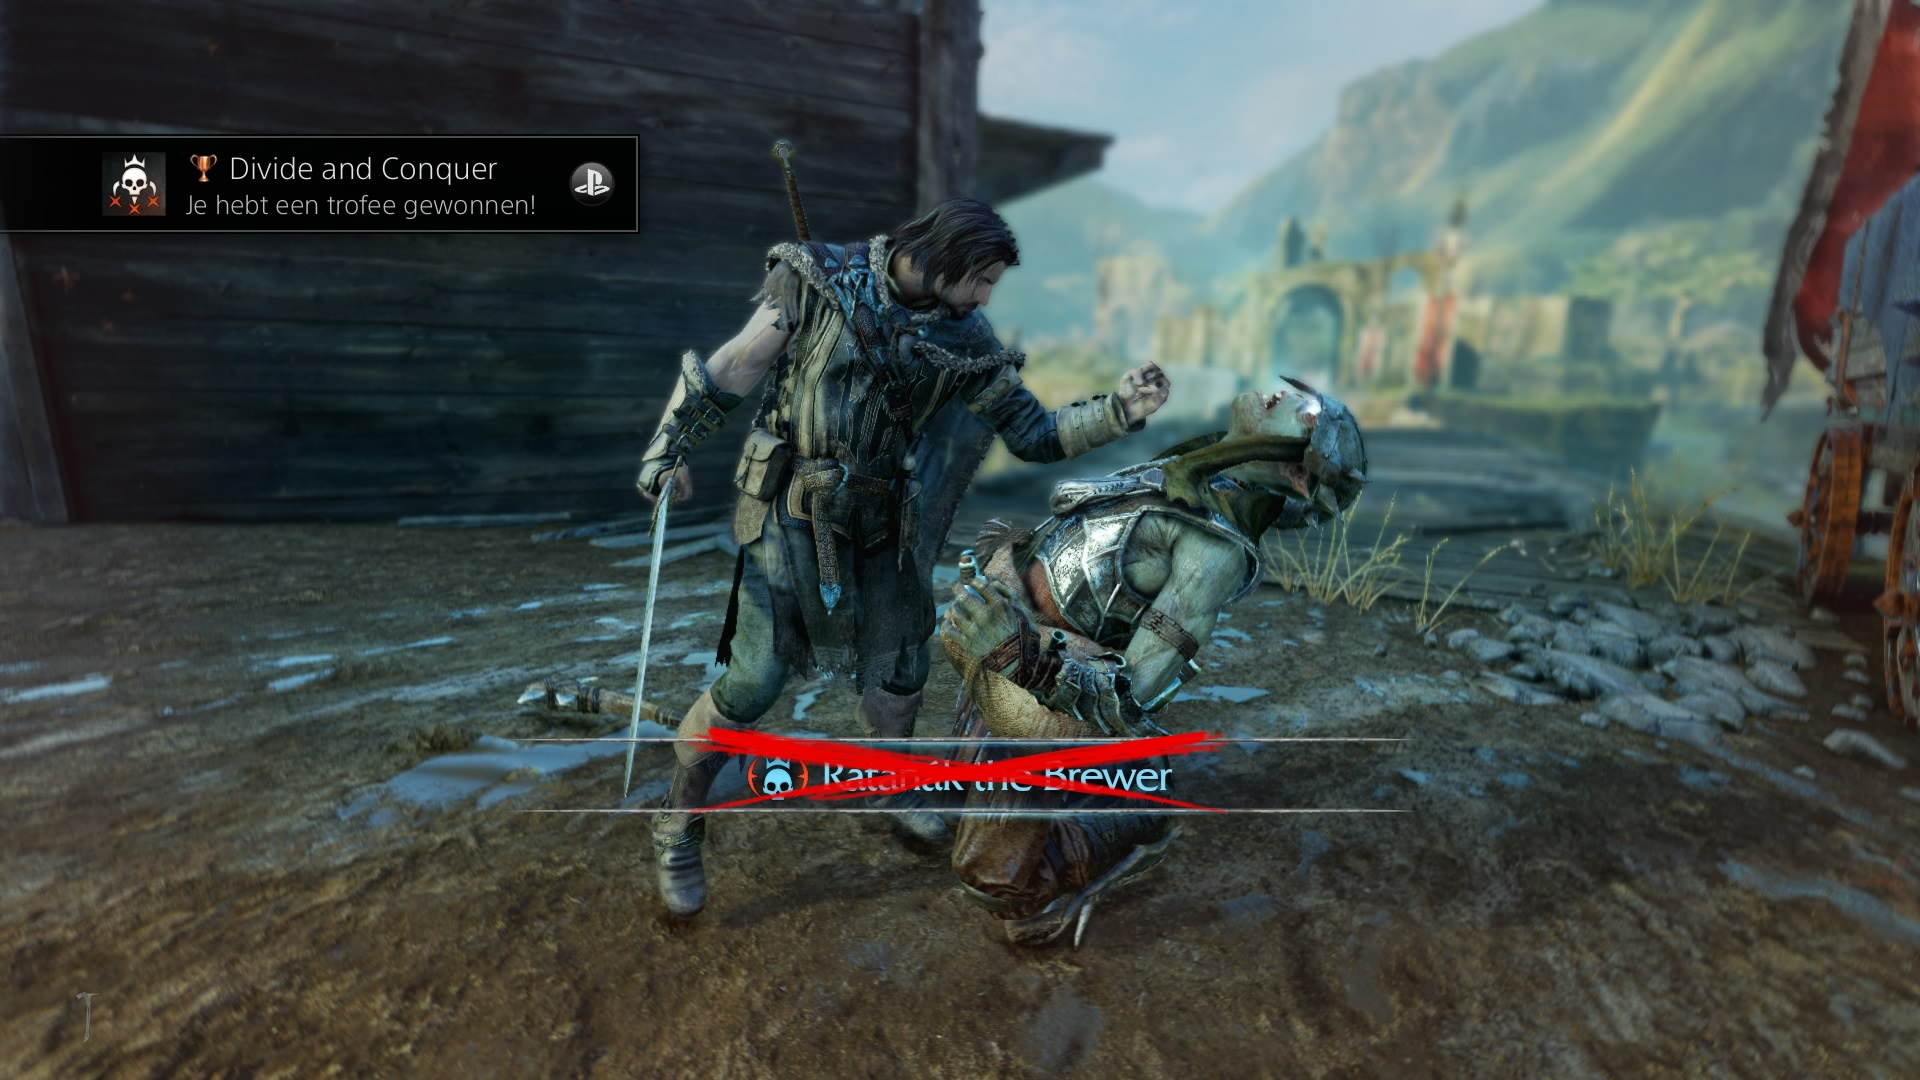 Middle-earth: Shadow of Mordor Divide and Conquer(Bronze)